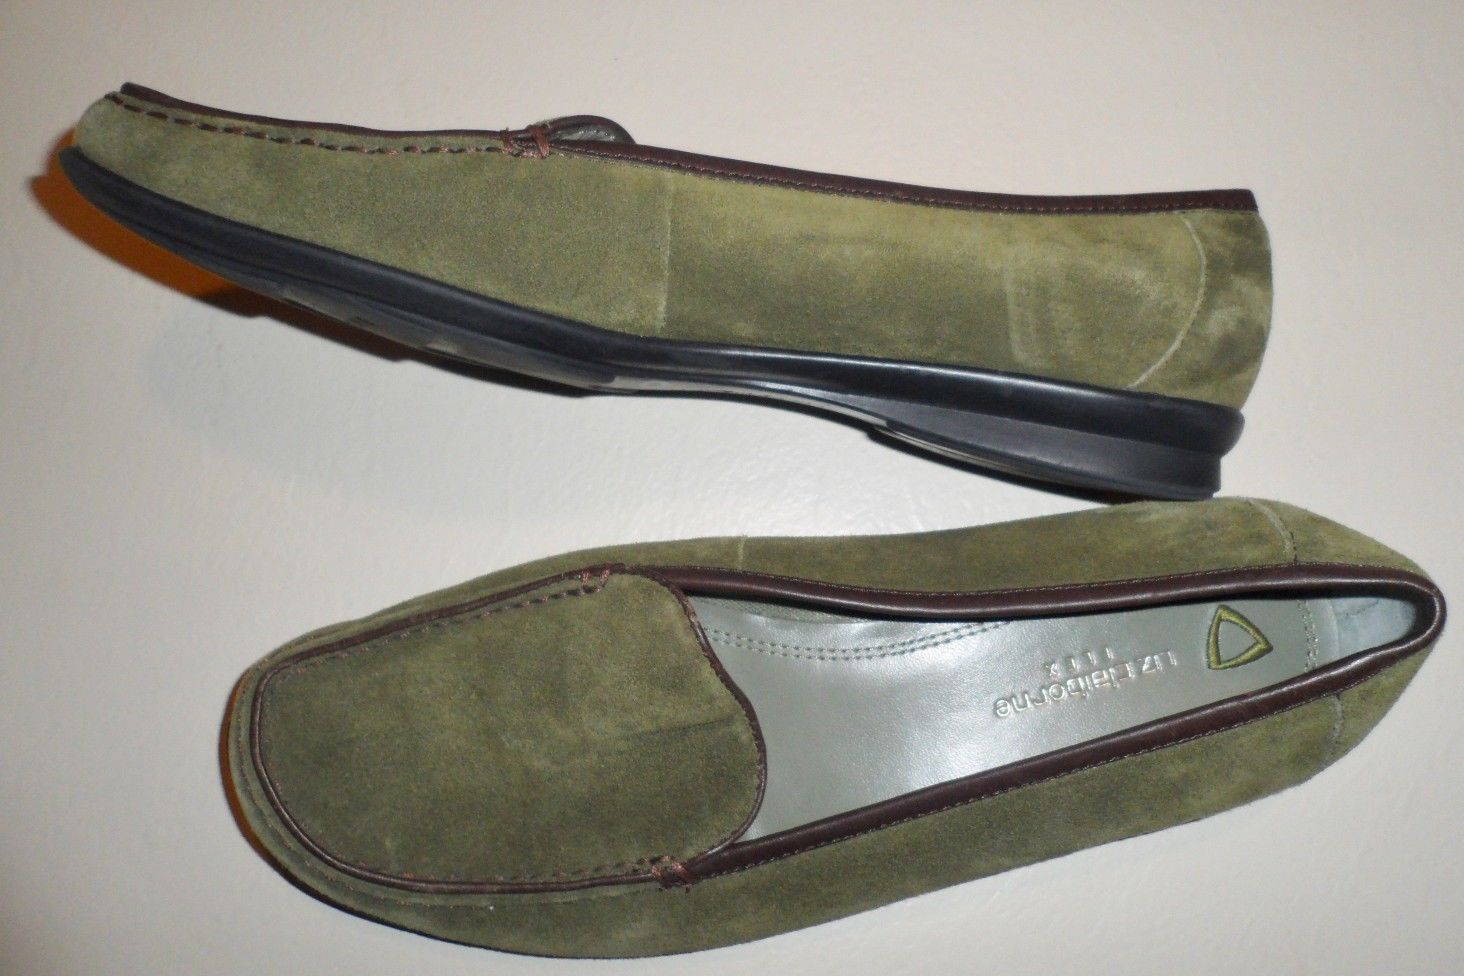 Liz Claiborne Loafers Weekend Shoes Green Suede Leather Flat Slip-on Womens 7